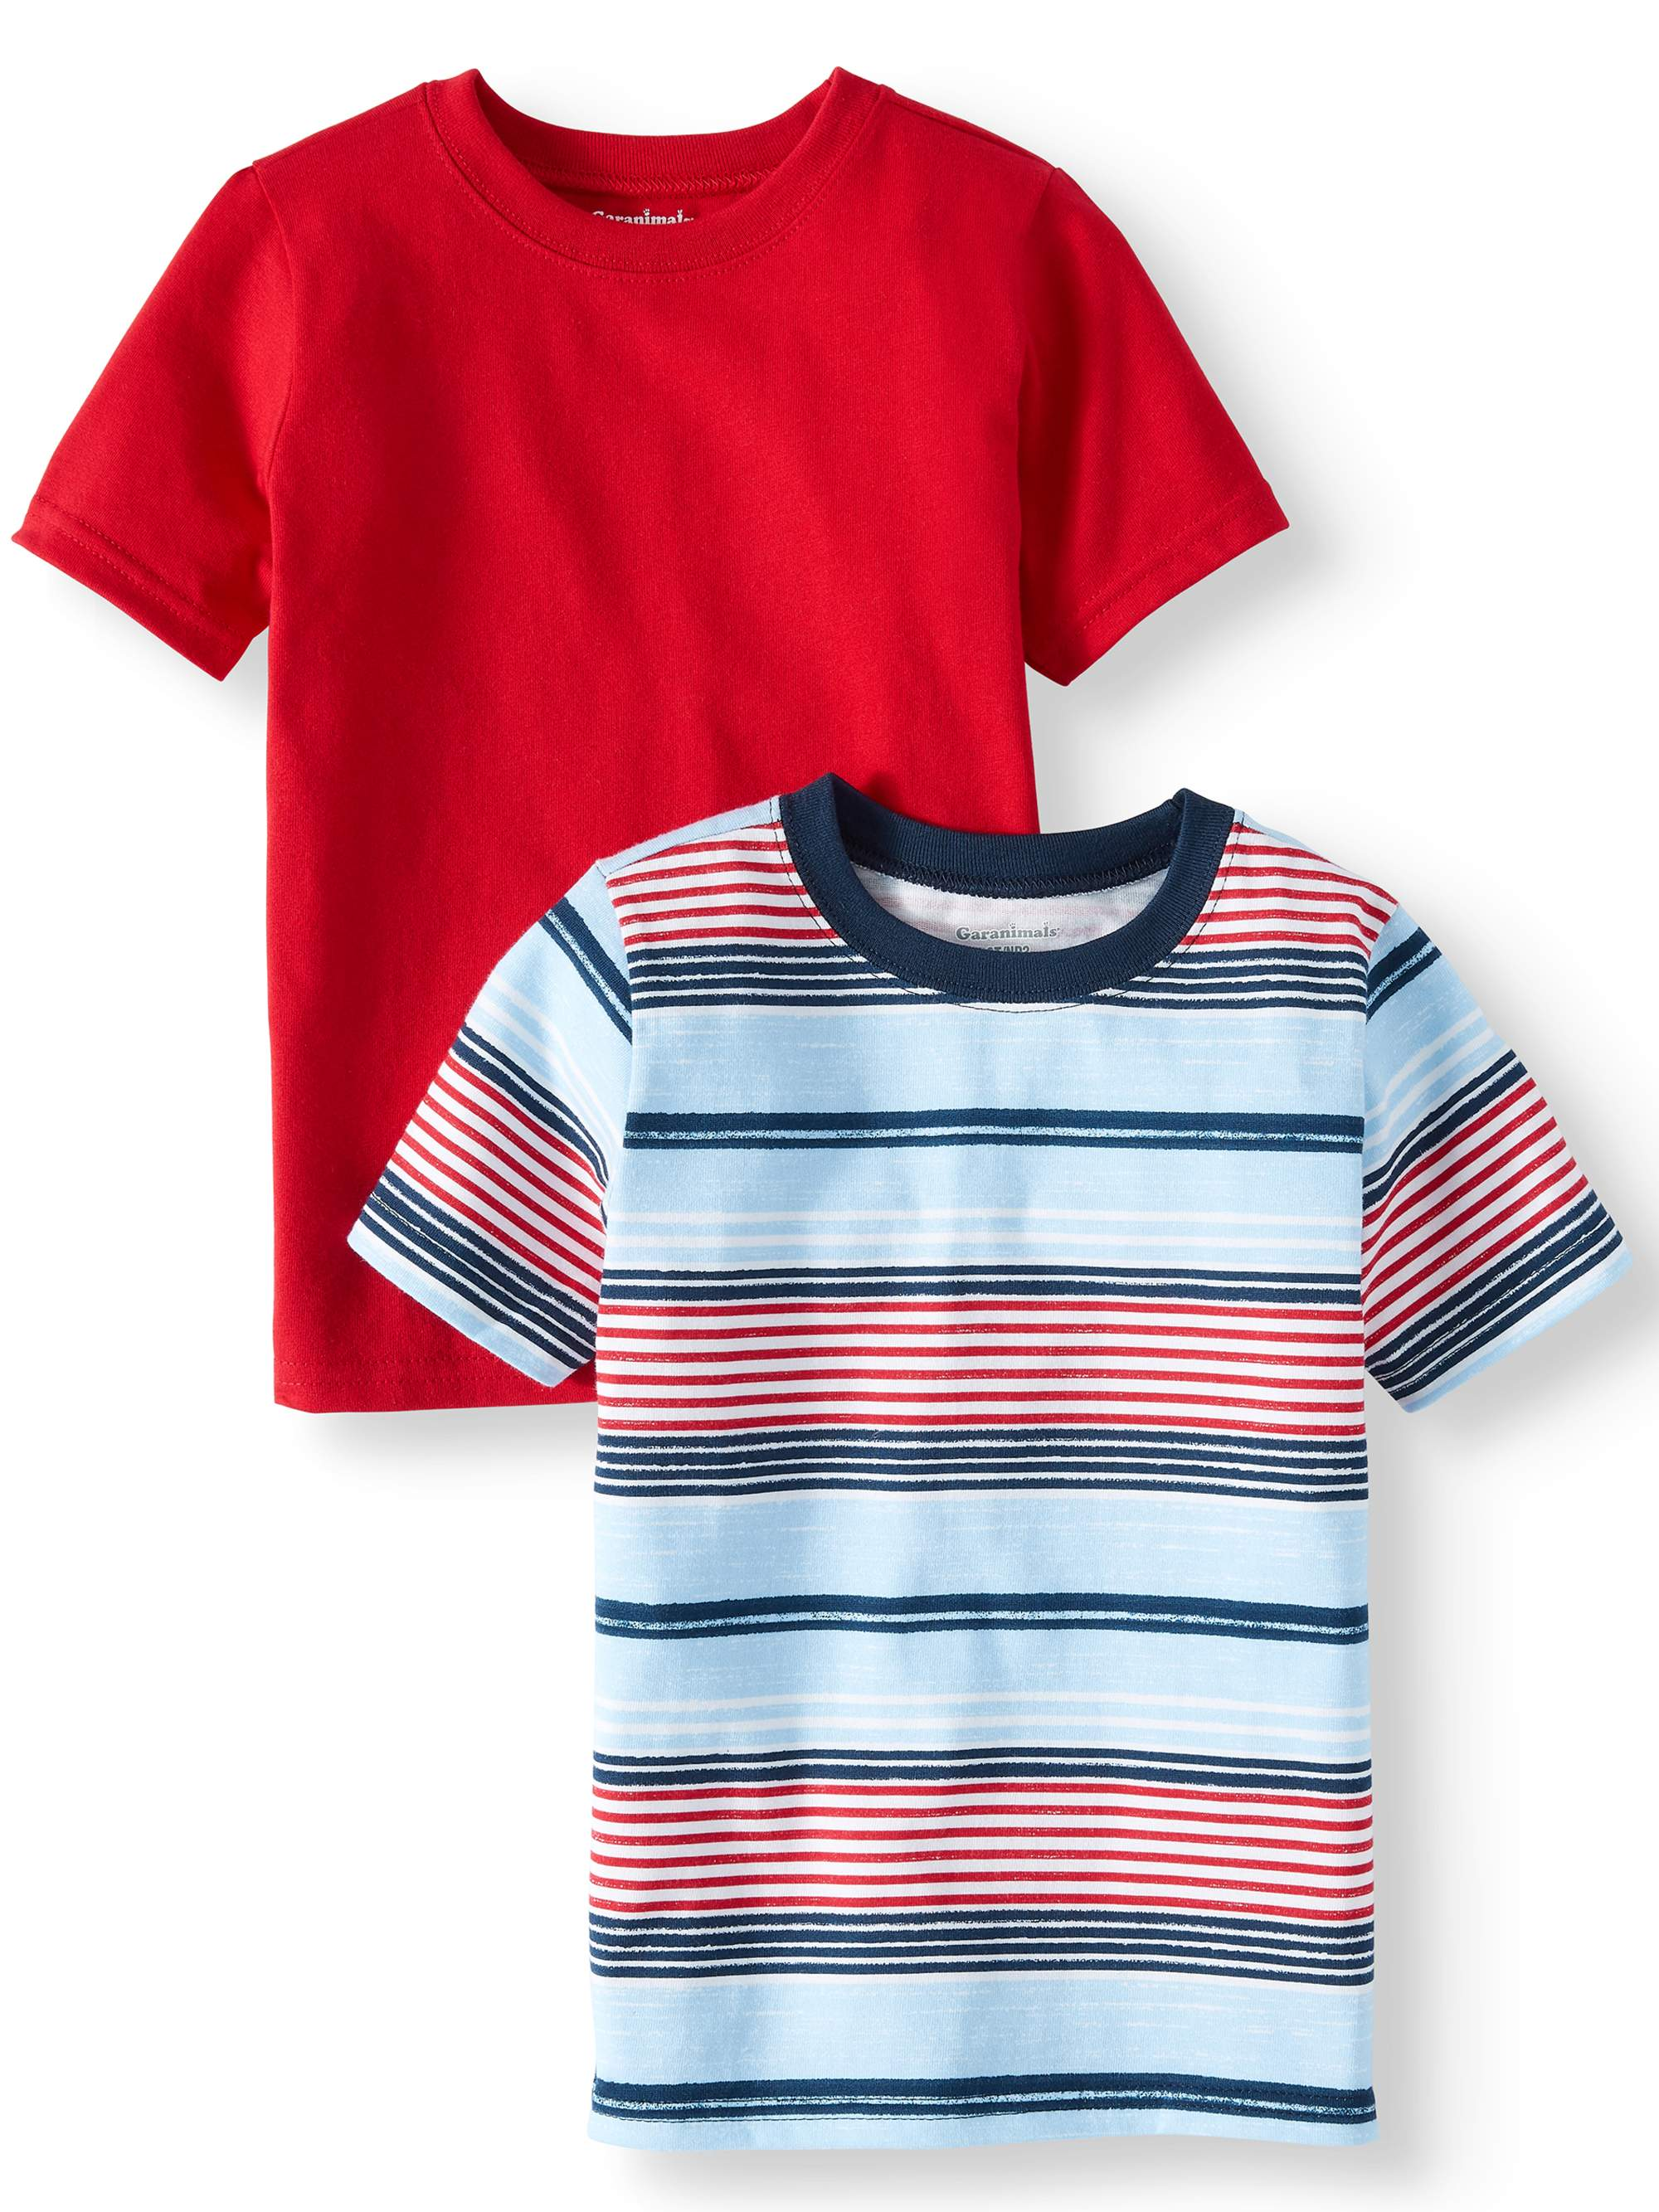 Striped & Solid T-Shirts, 2pc Multi-Pack (Toddler Boys)